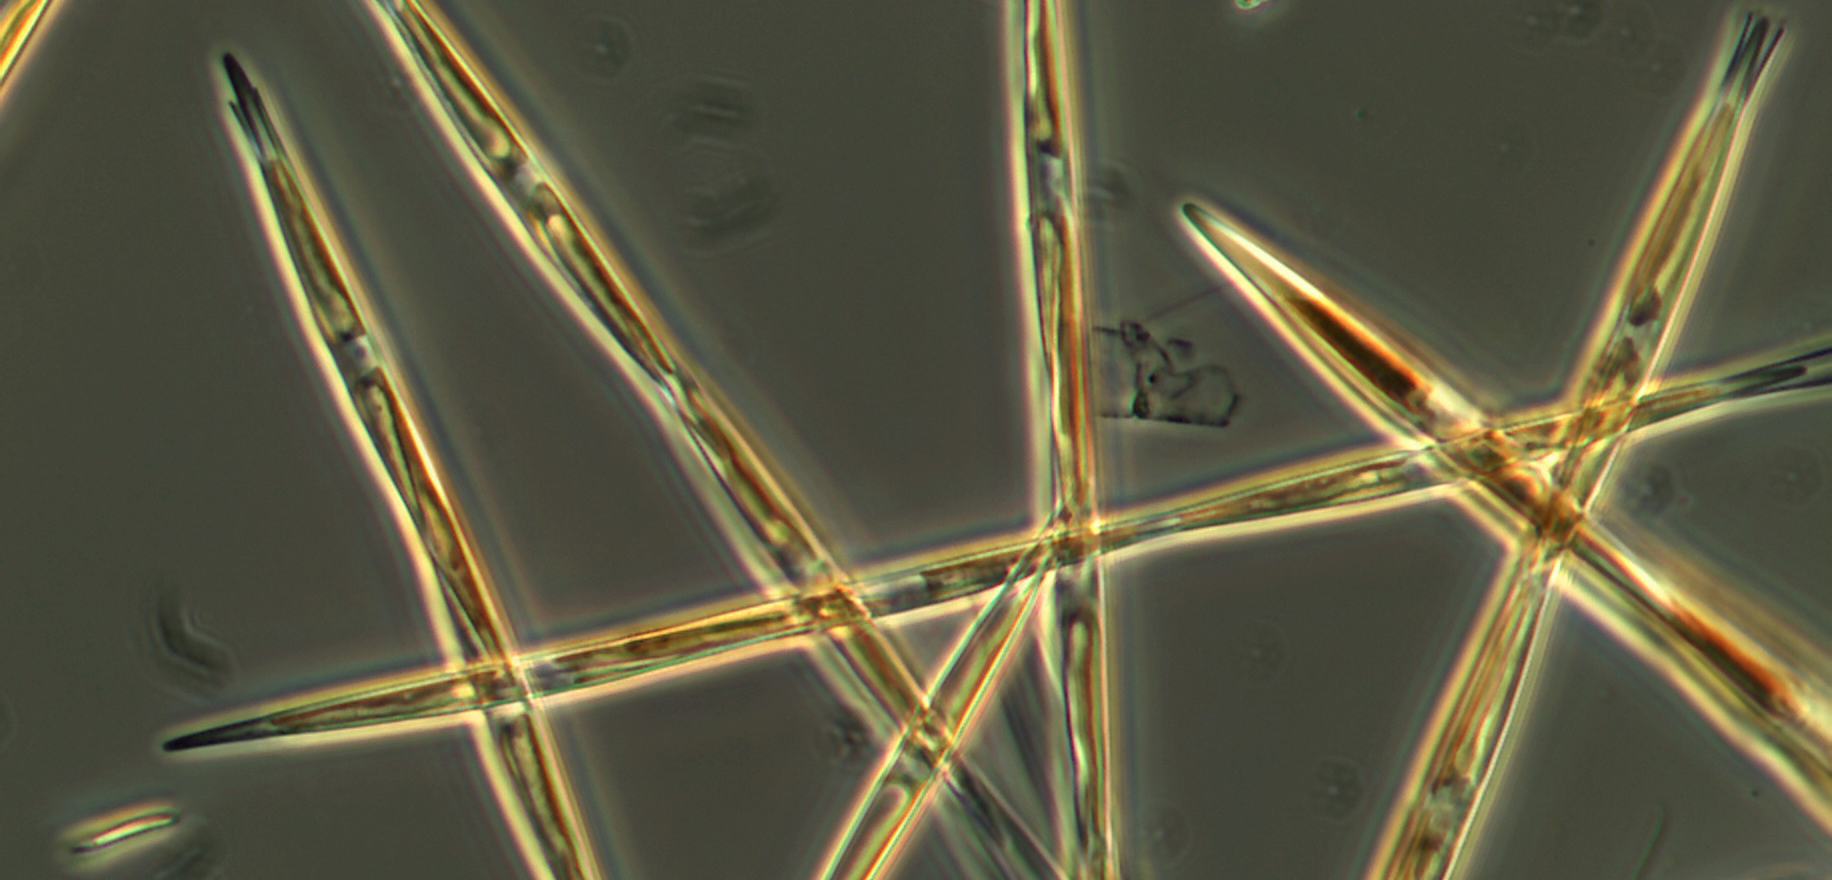 Algae in the genus Pseudo-nitzschia produce domoic acid, a toxin that can cause amnesic shellfish poisoning. Photo by NOAA Fisheries/NWFSC